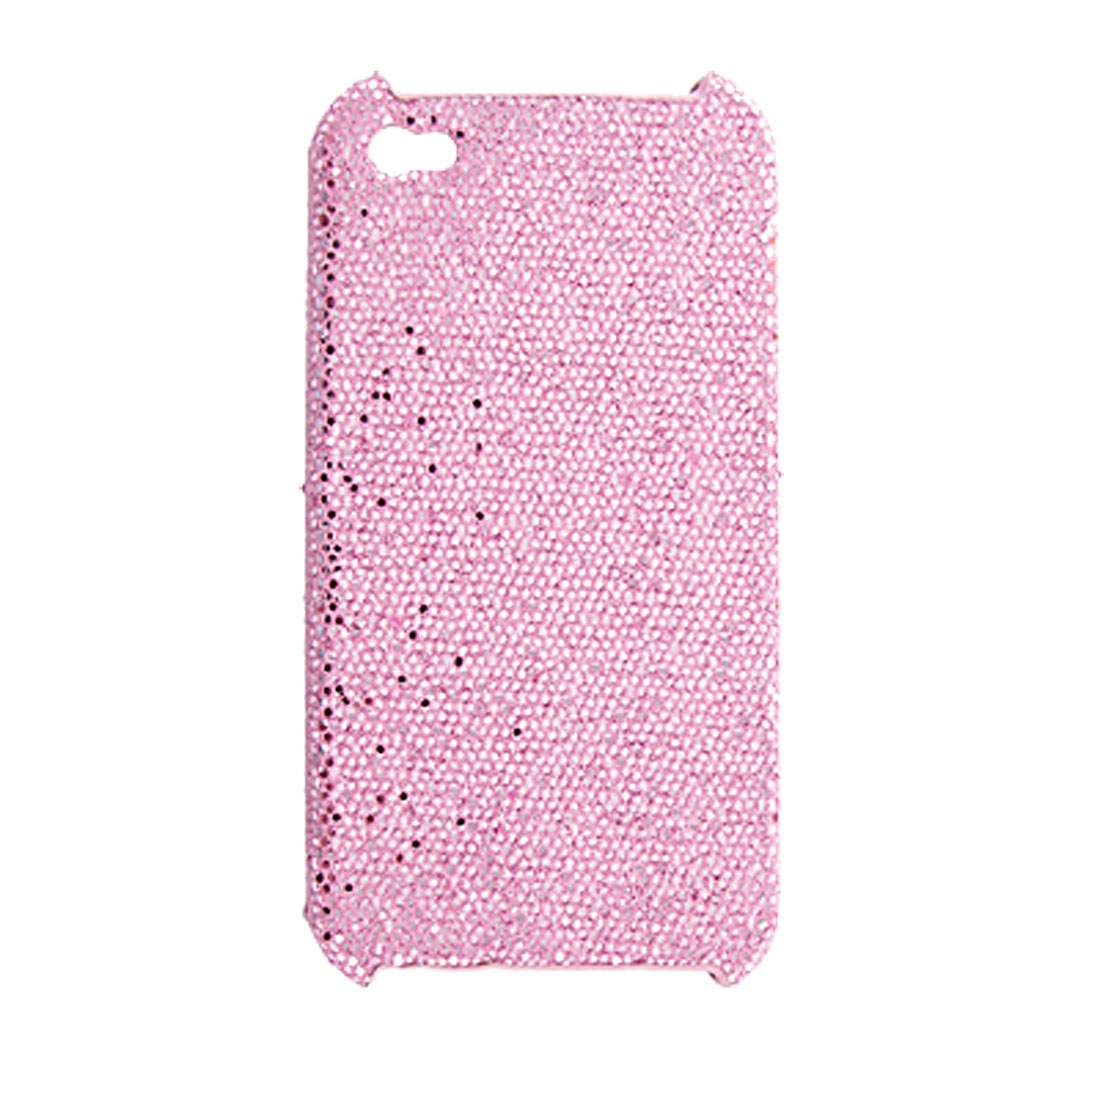 Pink Shiny Sequins Hard Plastic Back Case for iPhone 4 4G